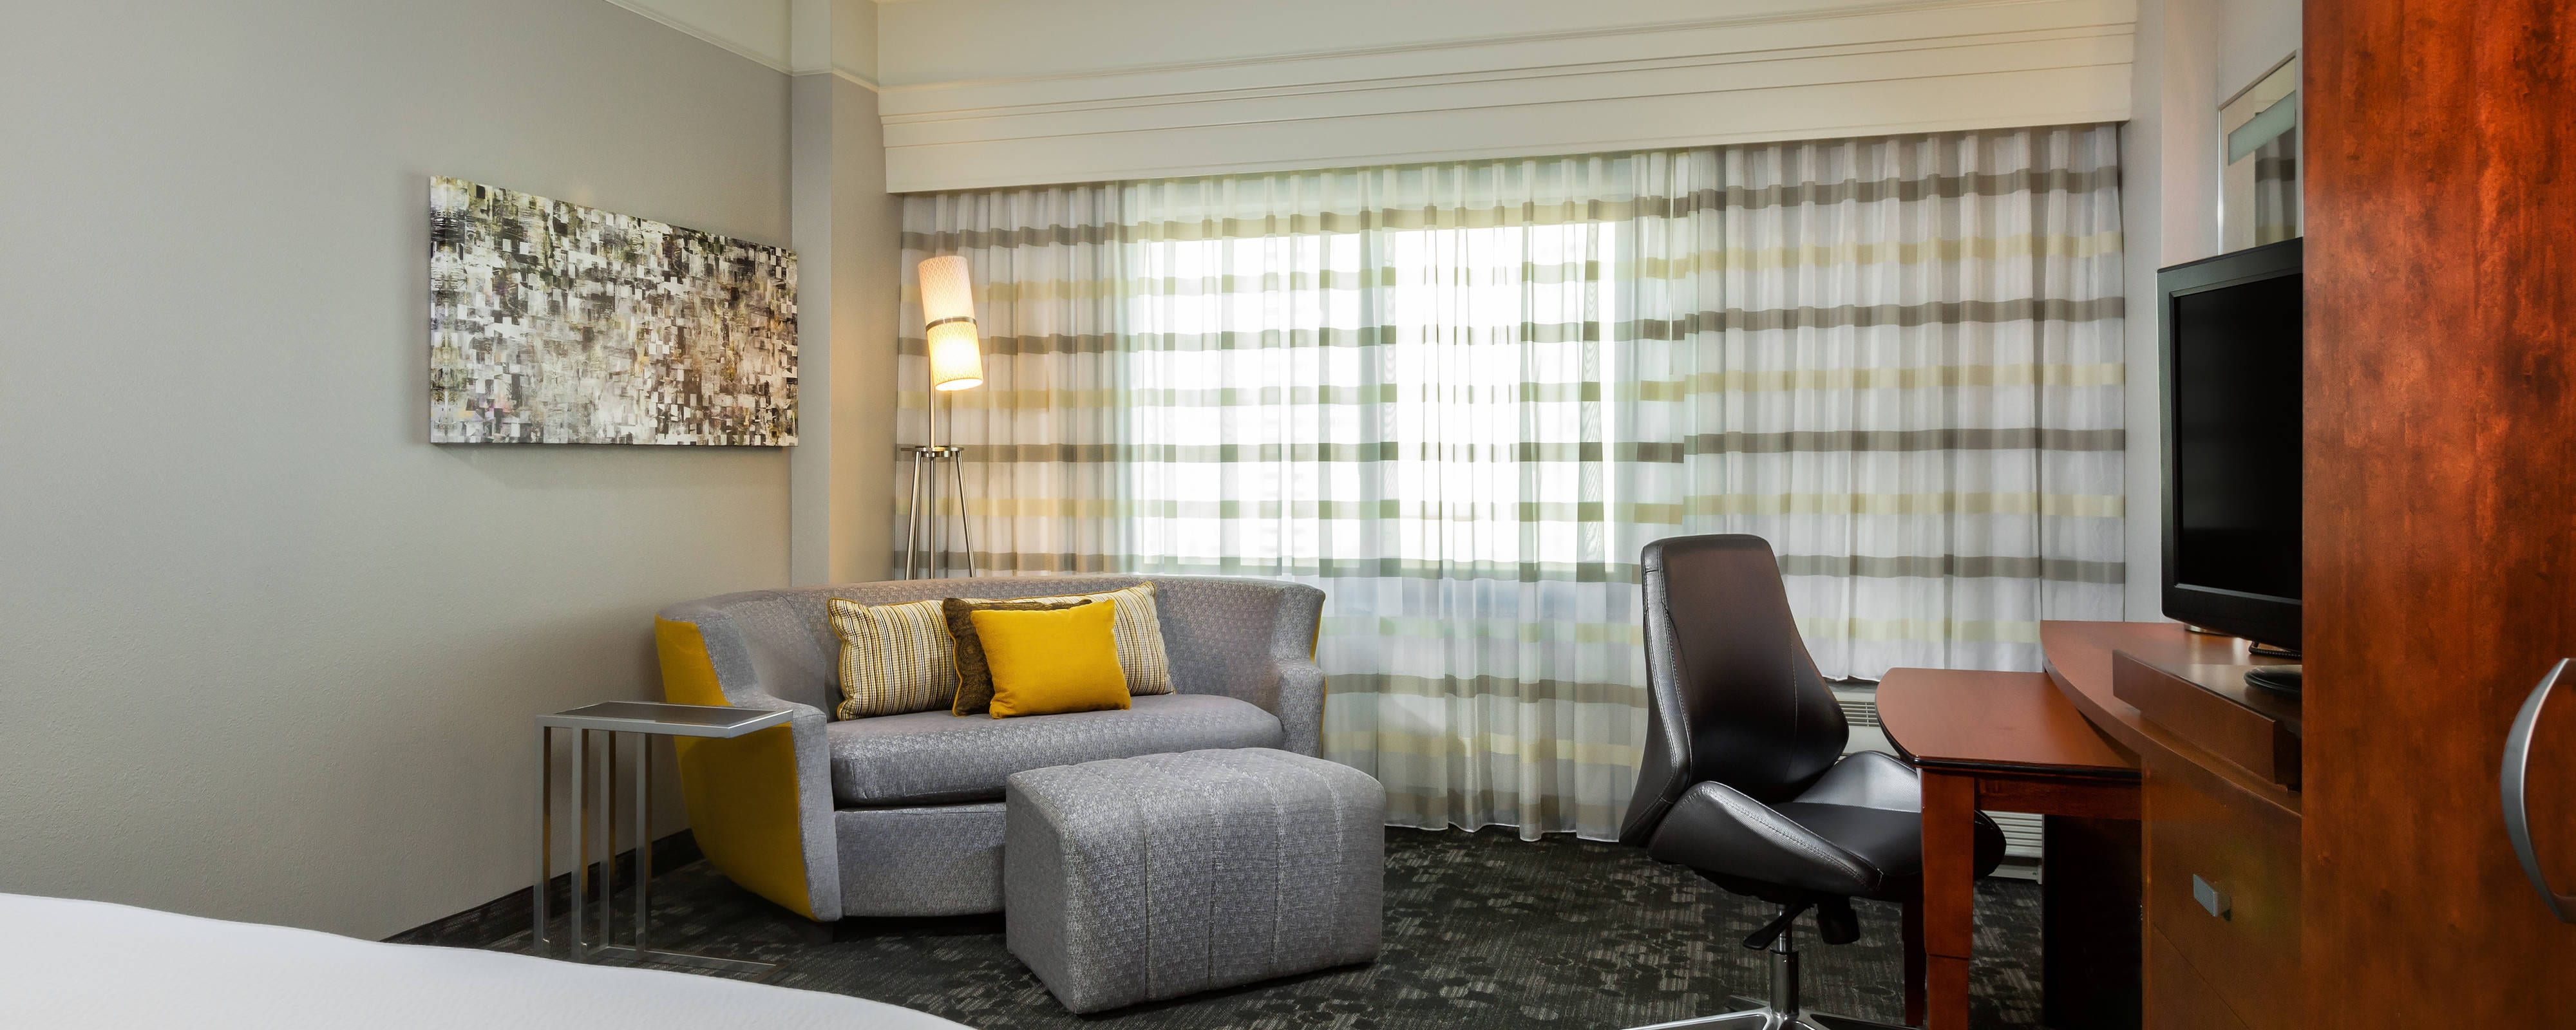 Houston Galleria Hotel – Quarto